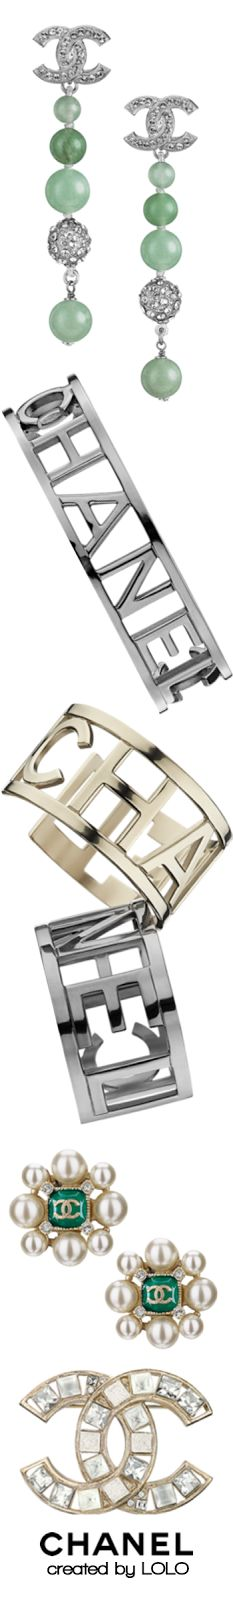 FASHION, Chanel, accessories, bracelets, rings, earrings, brooches, Spring/Summer 2015, Chanel Spring-Summer 2015 Accessories